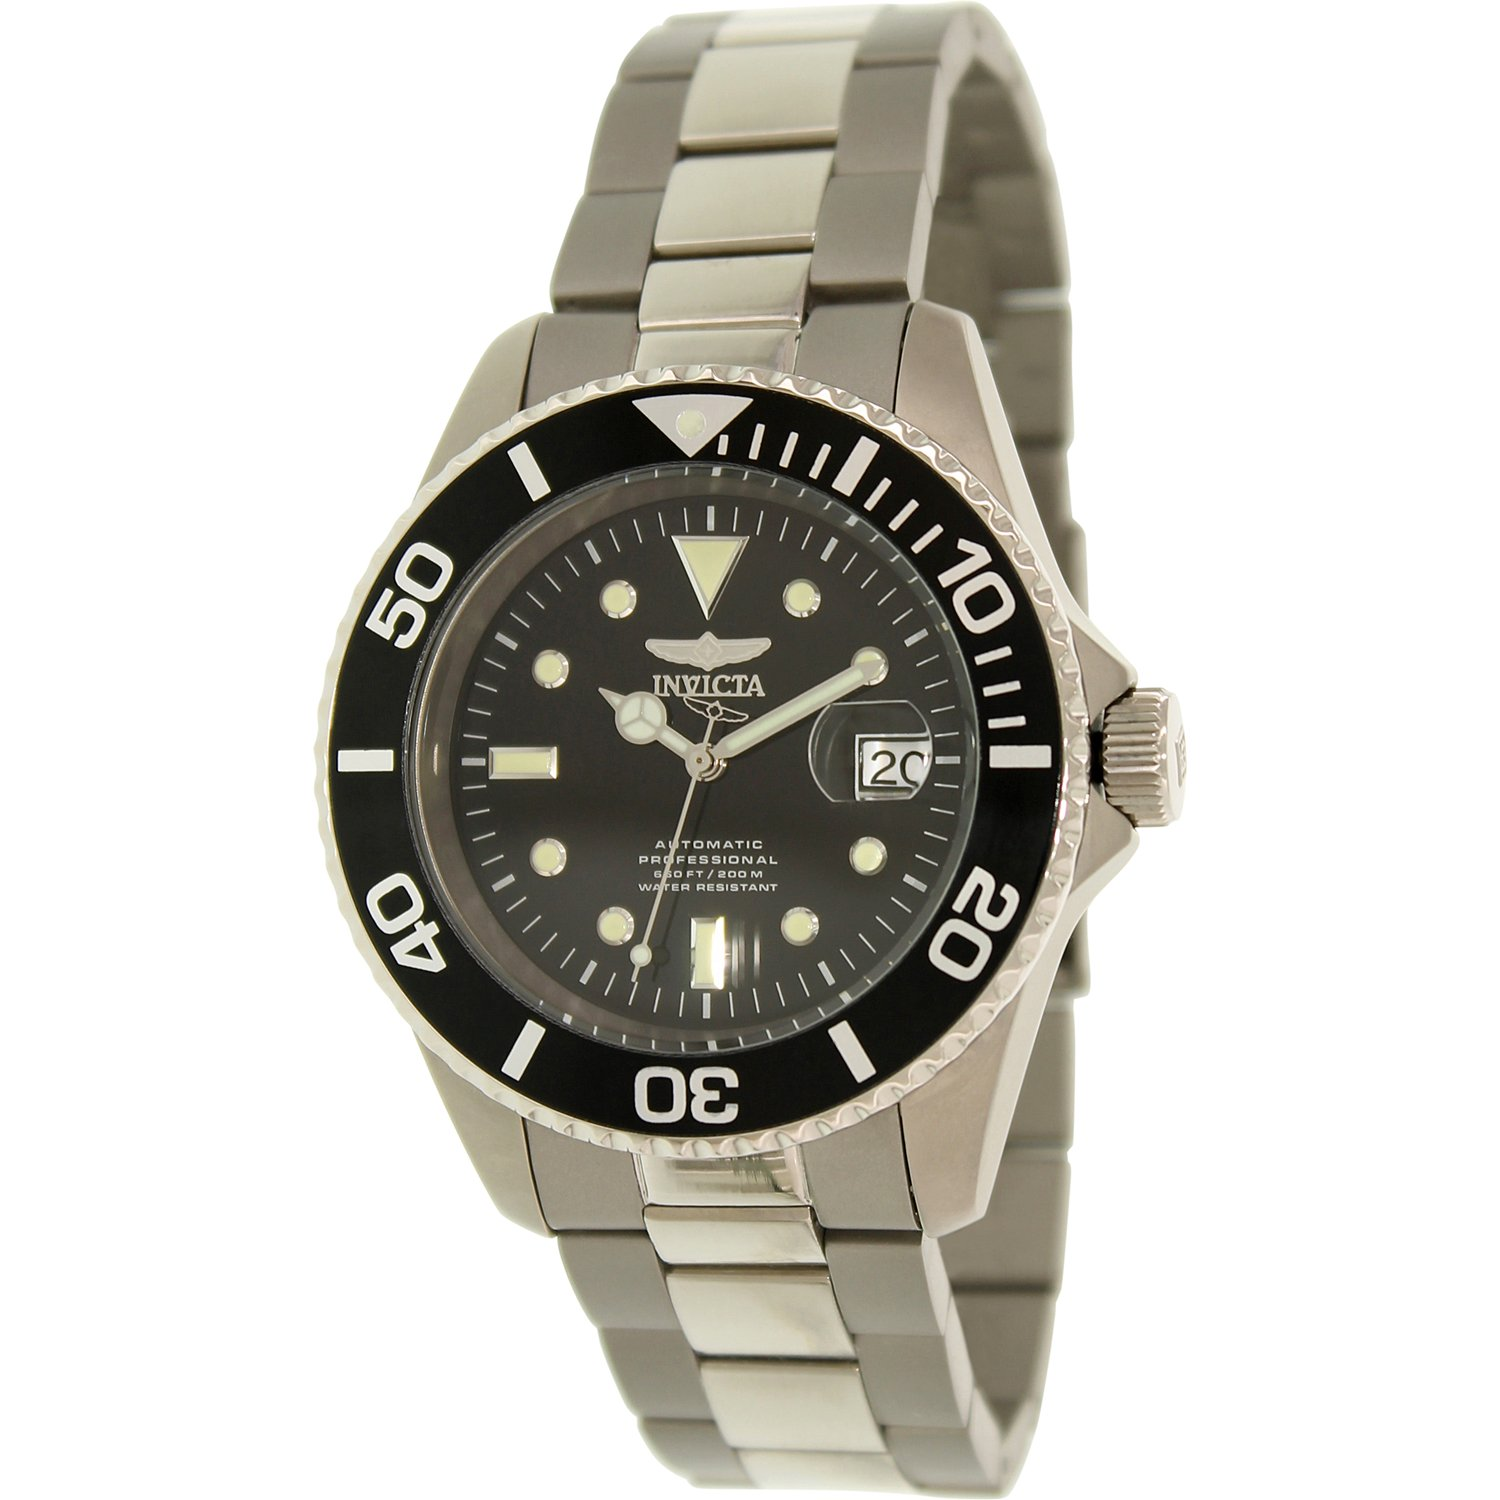 Invicta Men's Pro Diver Automatic Black Dial Stainless Steel